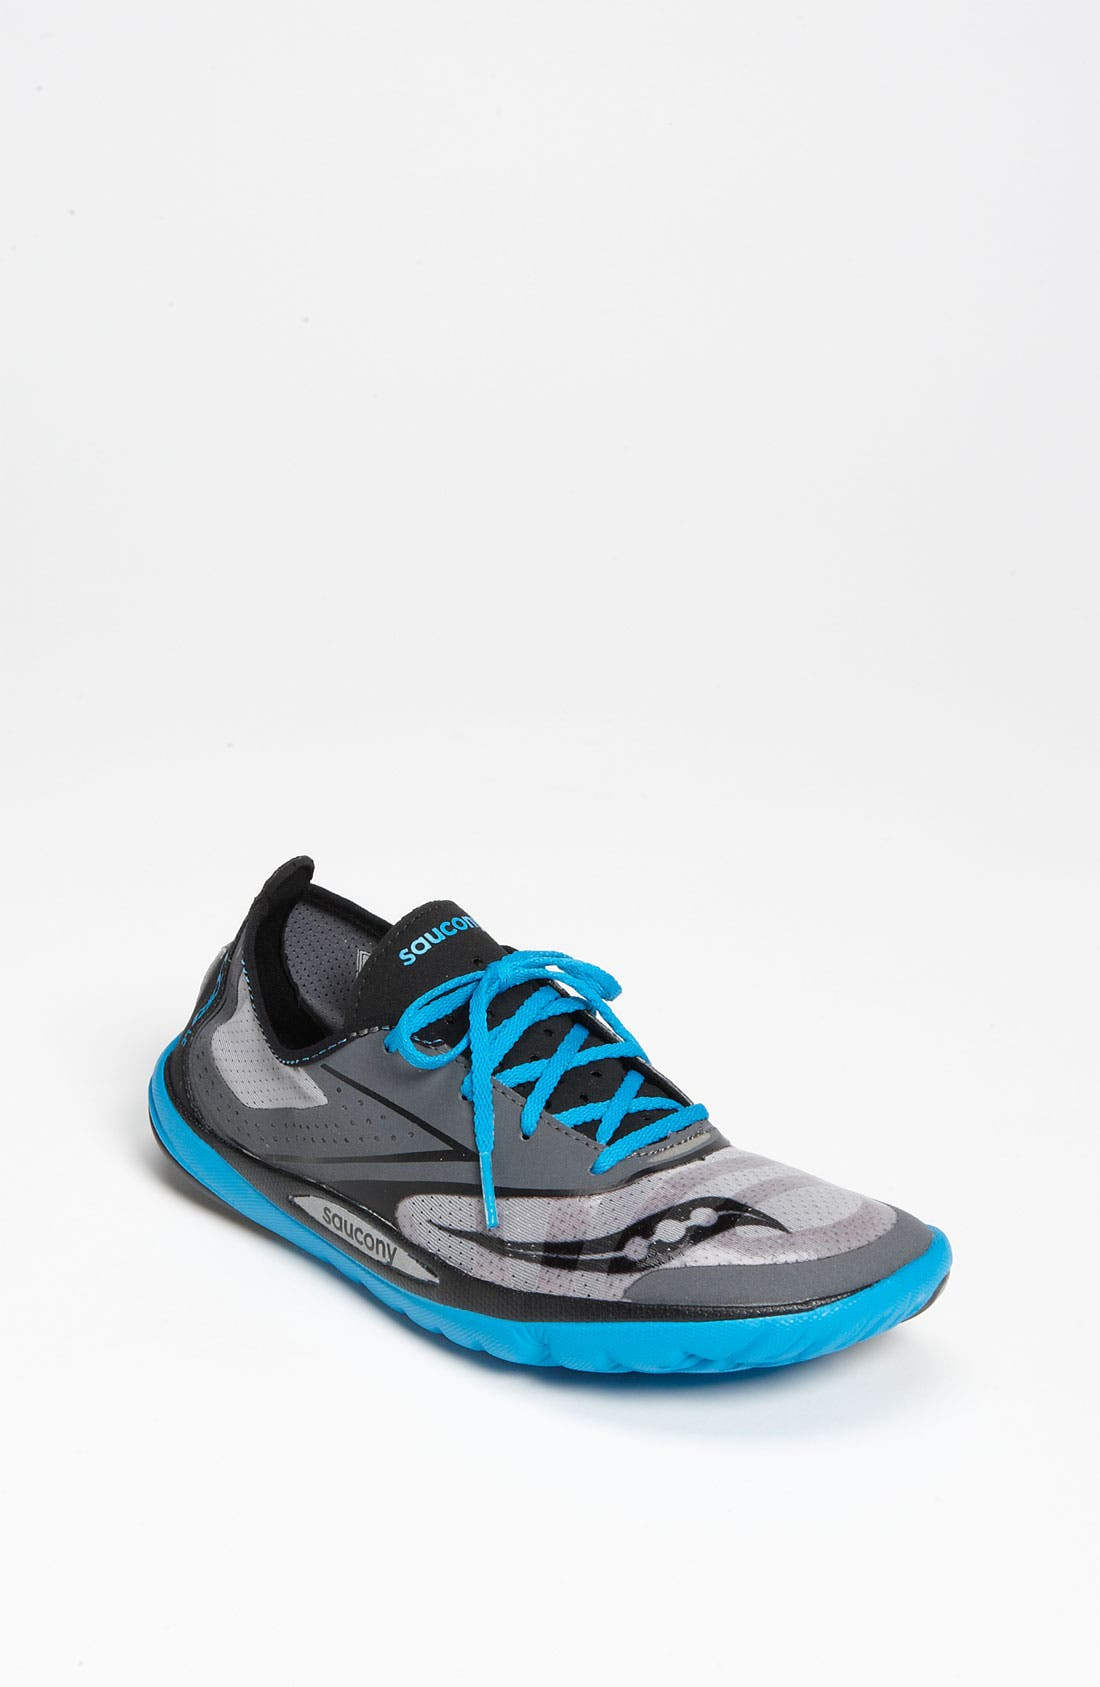 Alternate Image 1 Selected - Saucony 'Hattori' Running Shoe (Women)